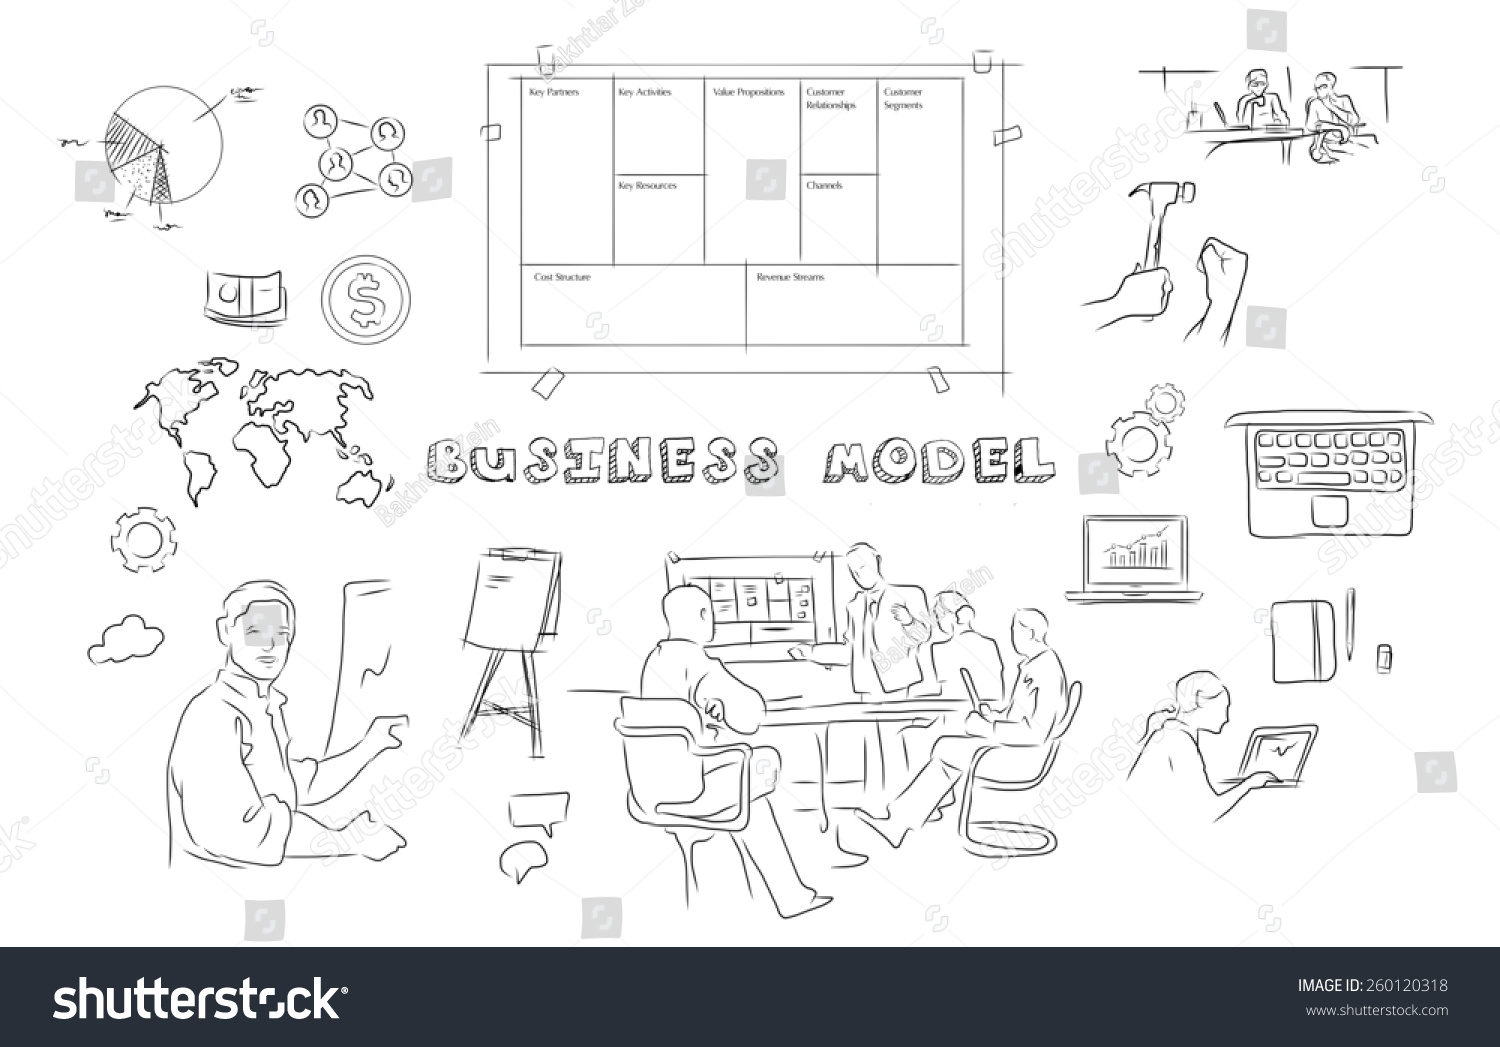 Nye Business Model Generation Stock Illustration 260120318 BD-65